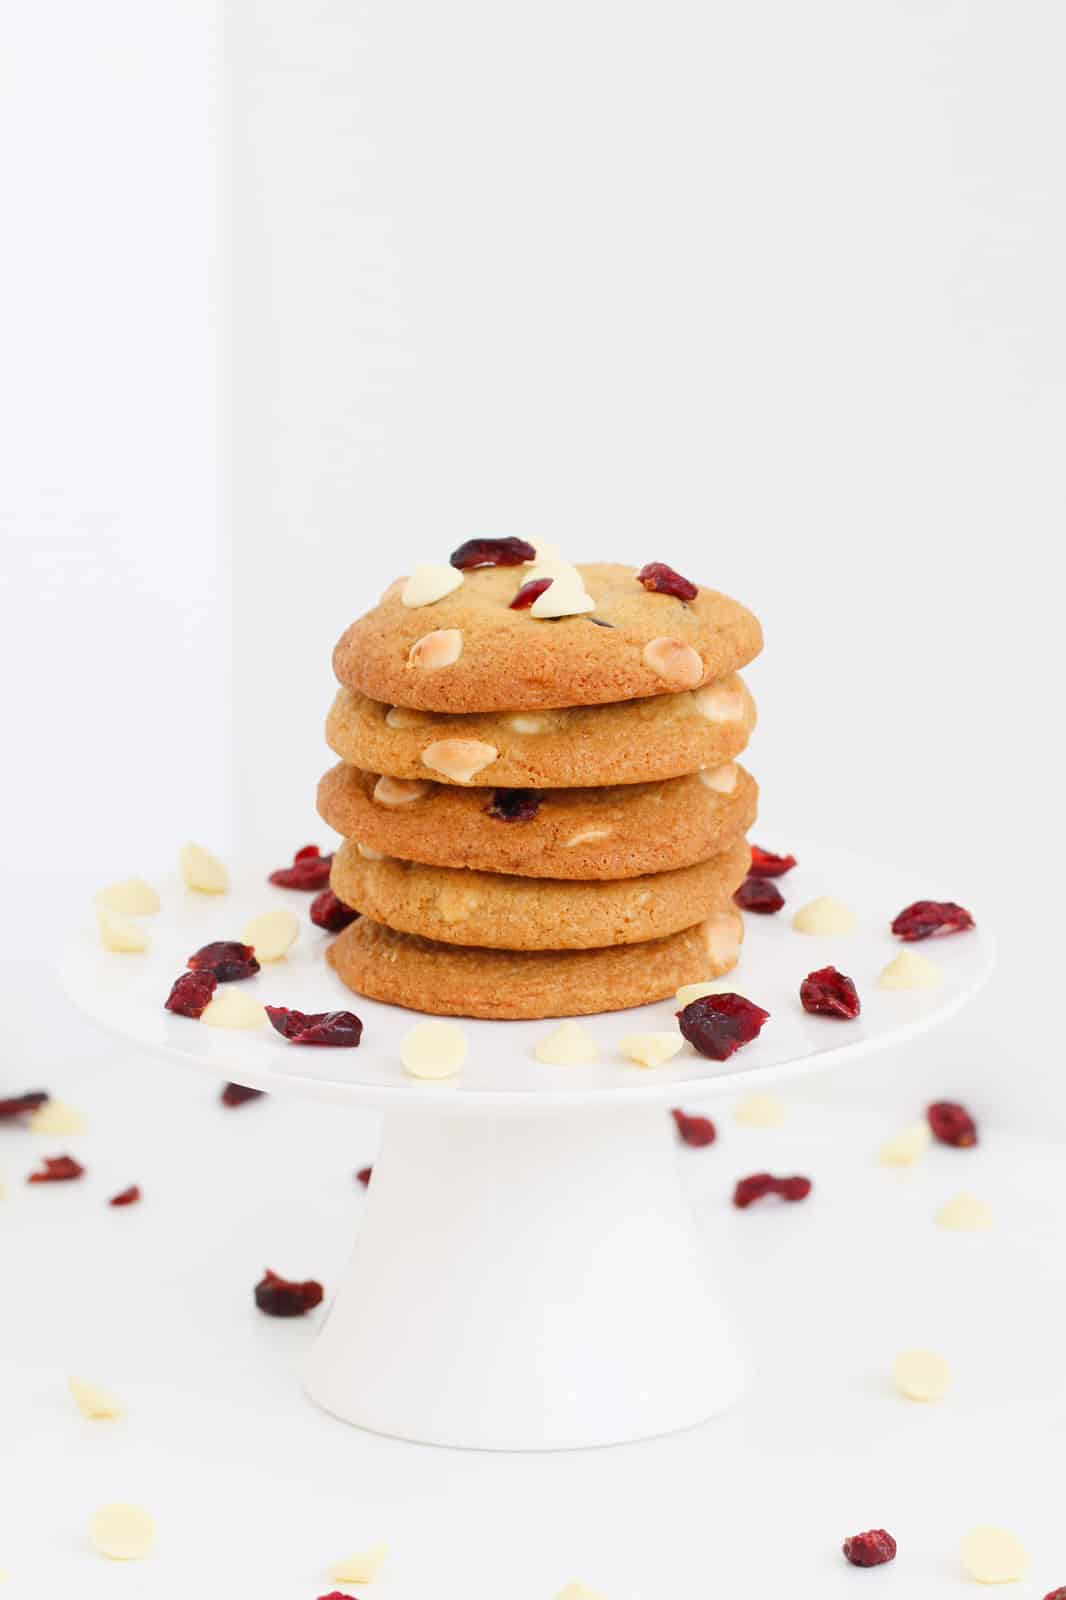 Five white chocolate and cranberry cookies stacked on a white cake stand with cranberries scattered around.